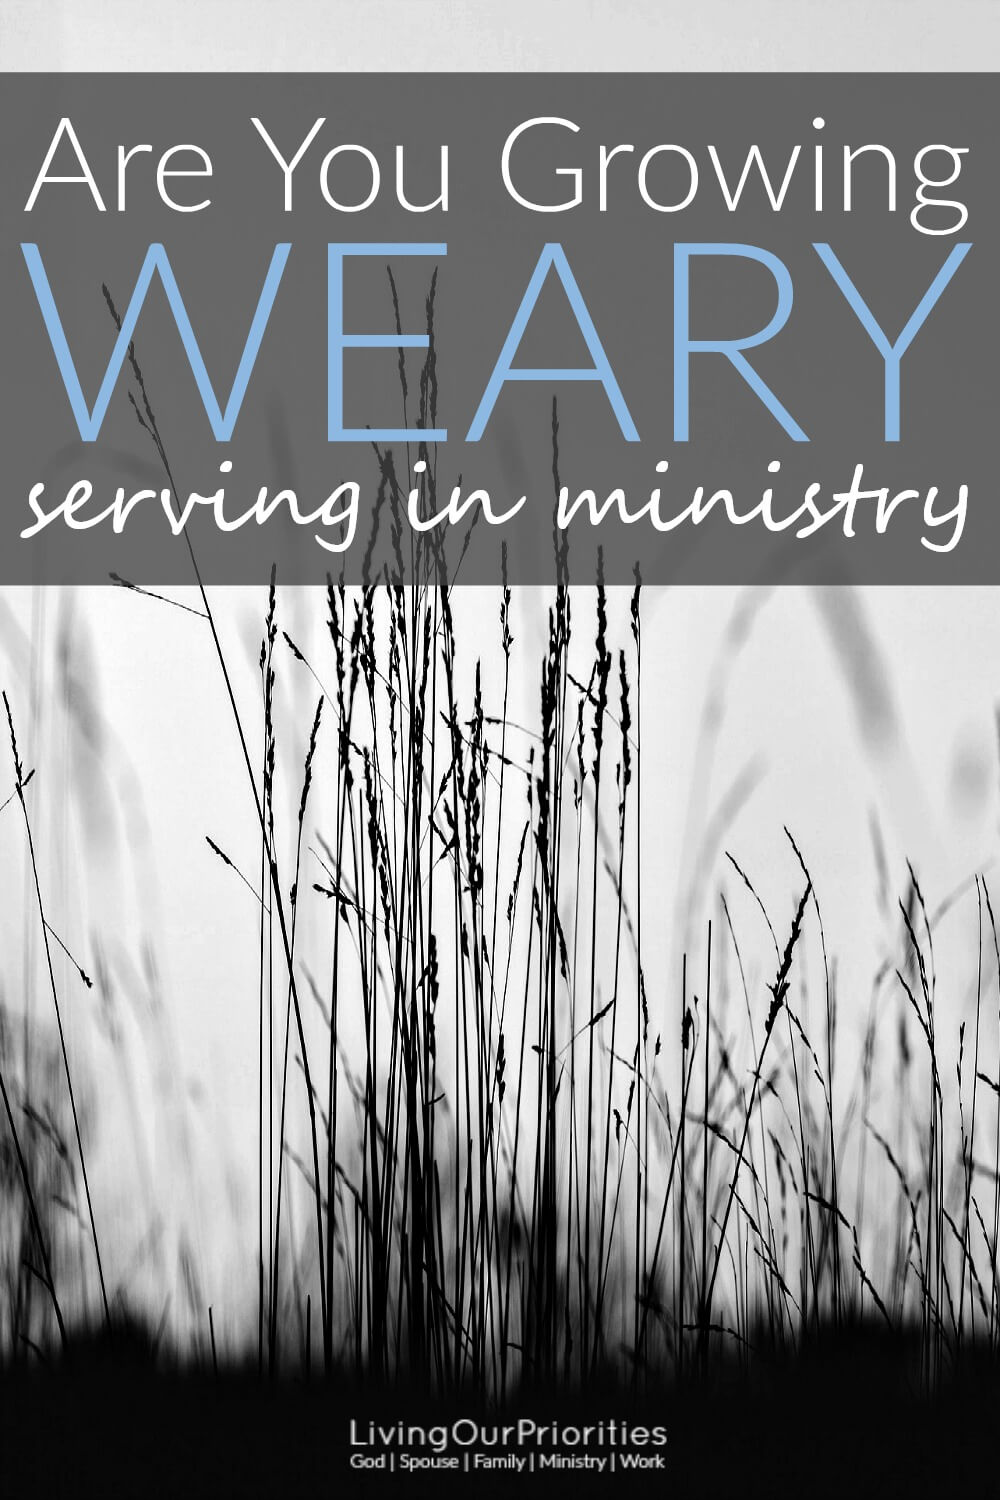 Ministry burnout is common. And while serving in the ministry is a good thing, we often find ourselves growing weary. But are we really stretched too thin or are we just weary? Learn how to determine the root to your weariness.